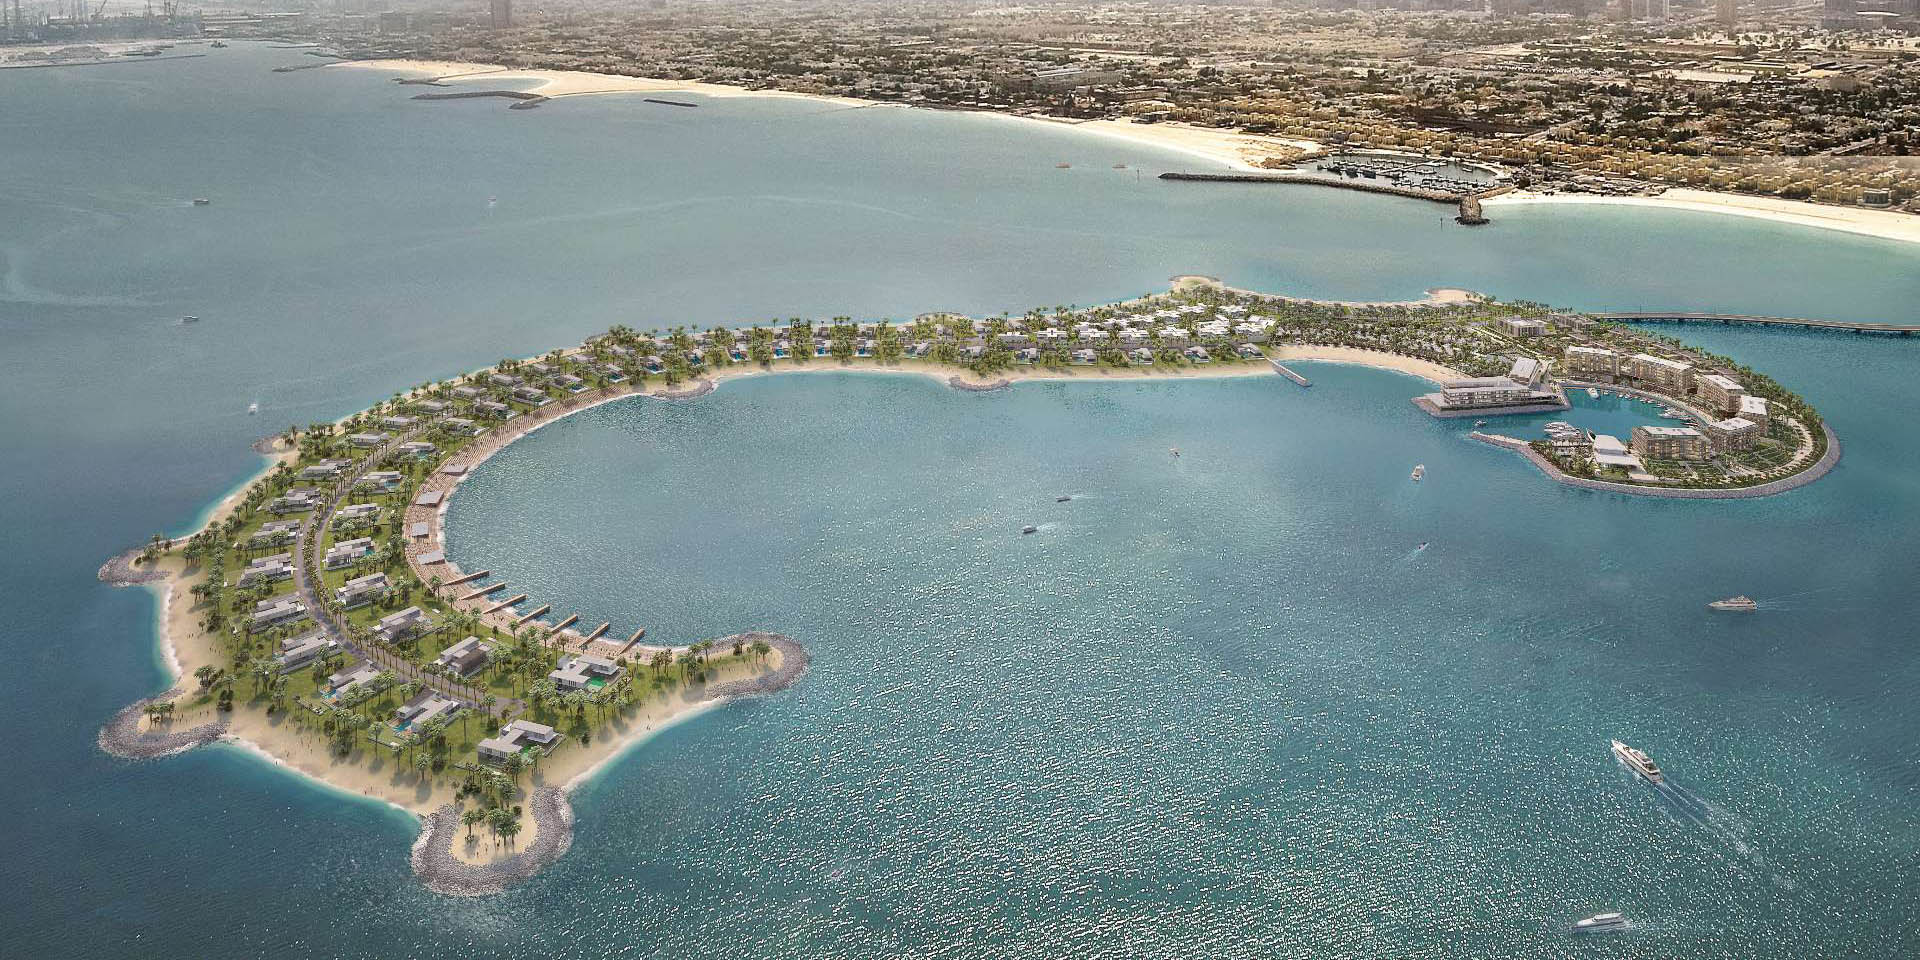 Bulgari Opens Luxury Dubai Resort on Seahorse-Shaped Island